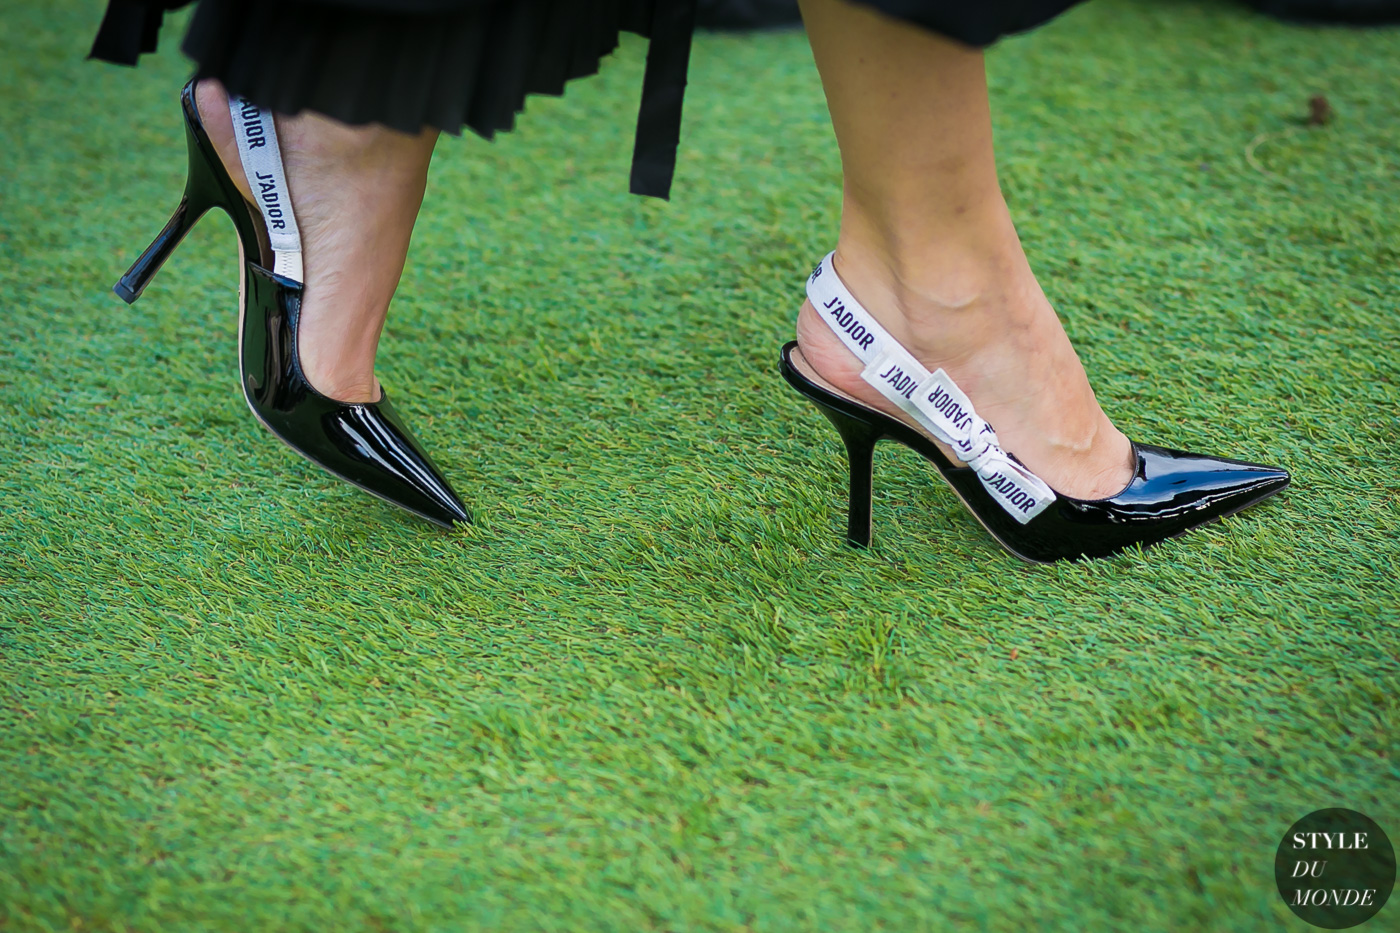 Dior Shoes by STYLEDUMONDE Street Style Fashion Photography